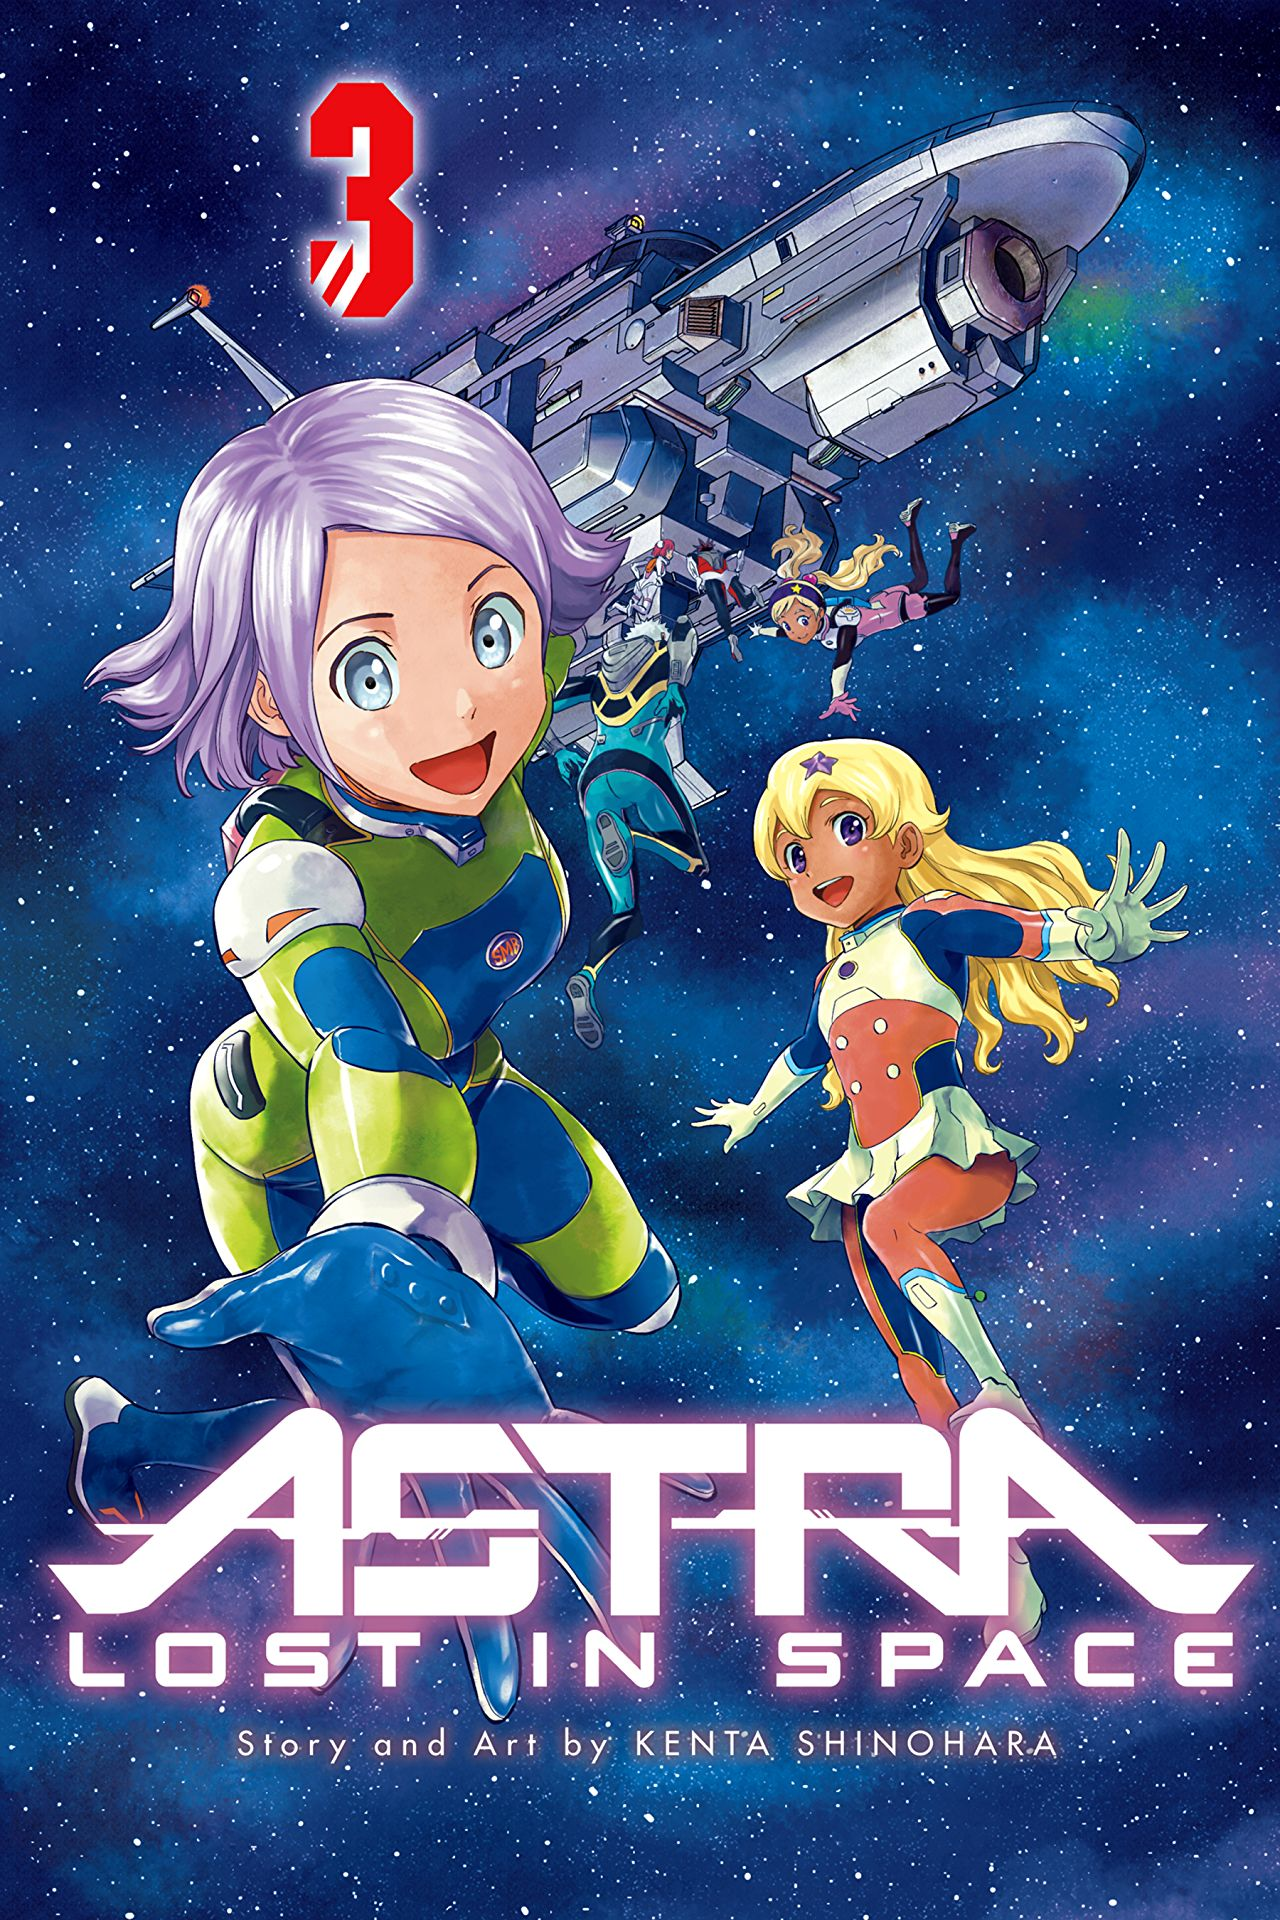 Astra Lost in Space Vol. 3 Review